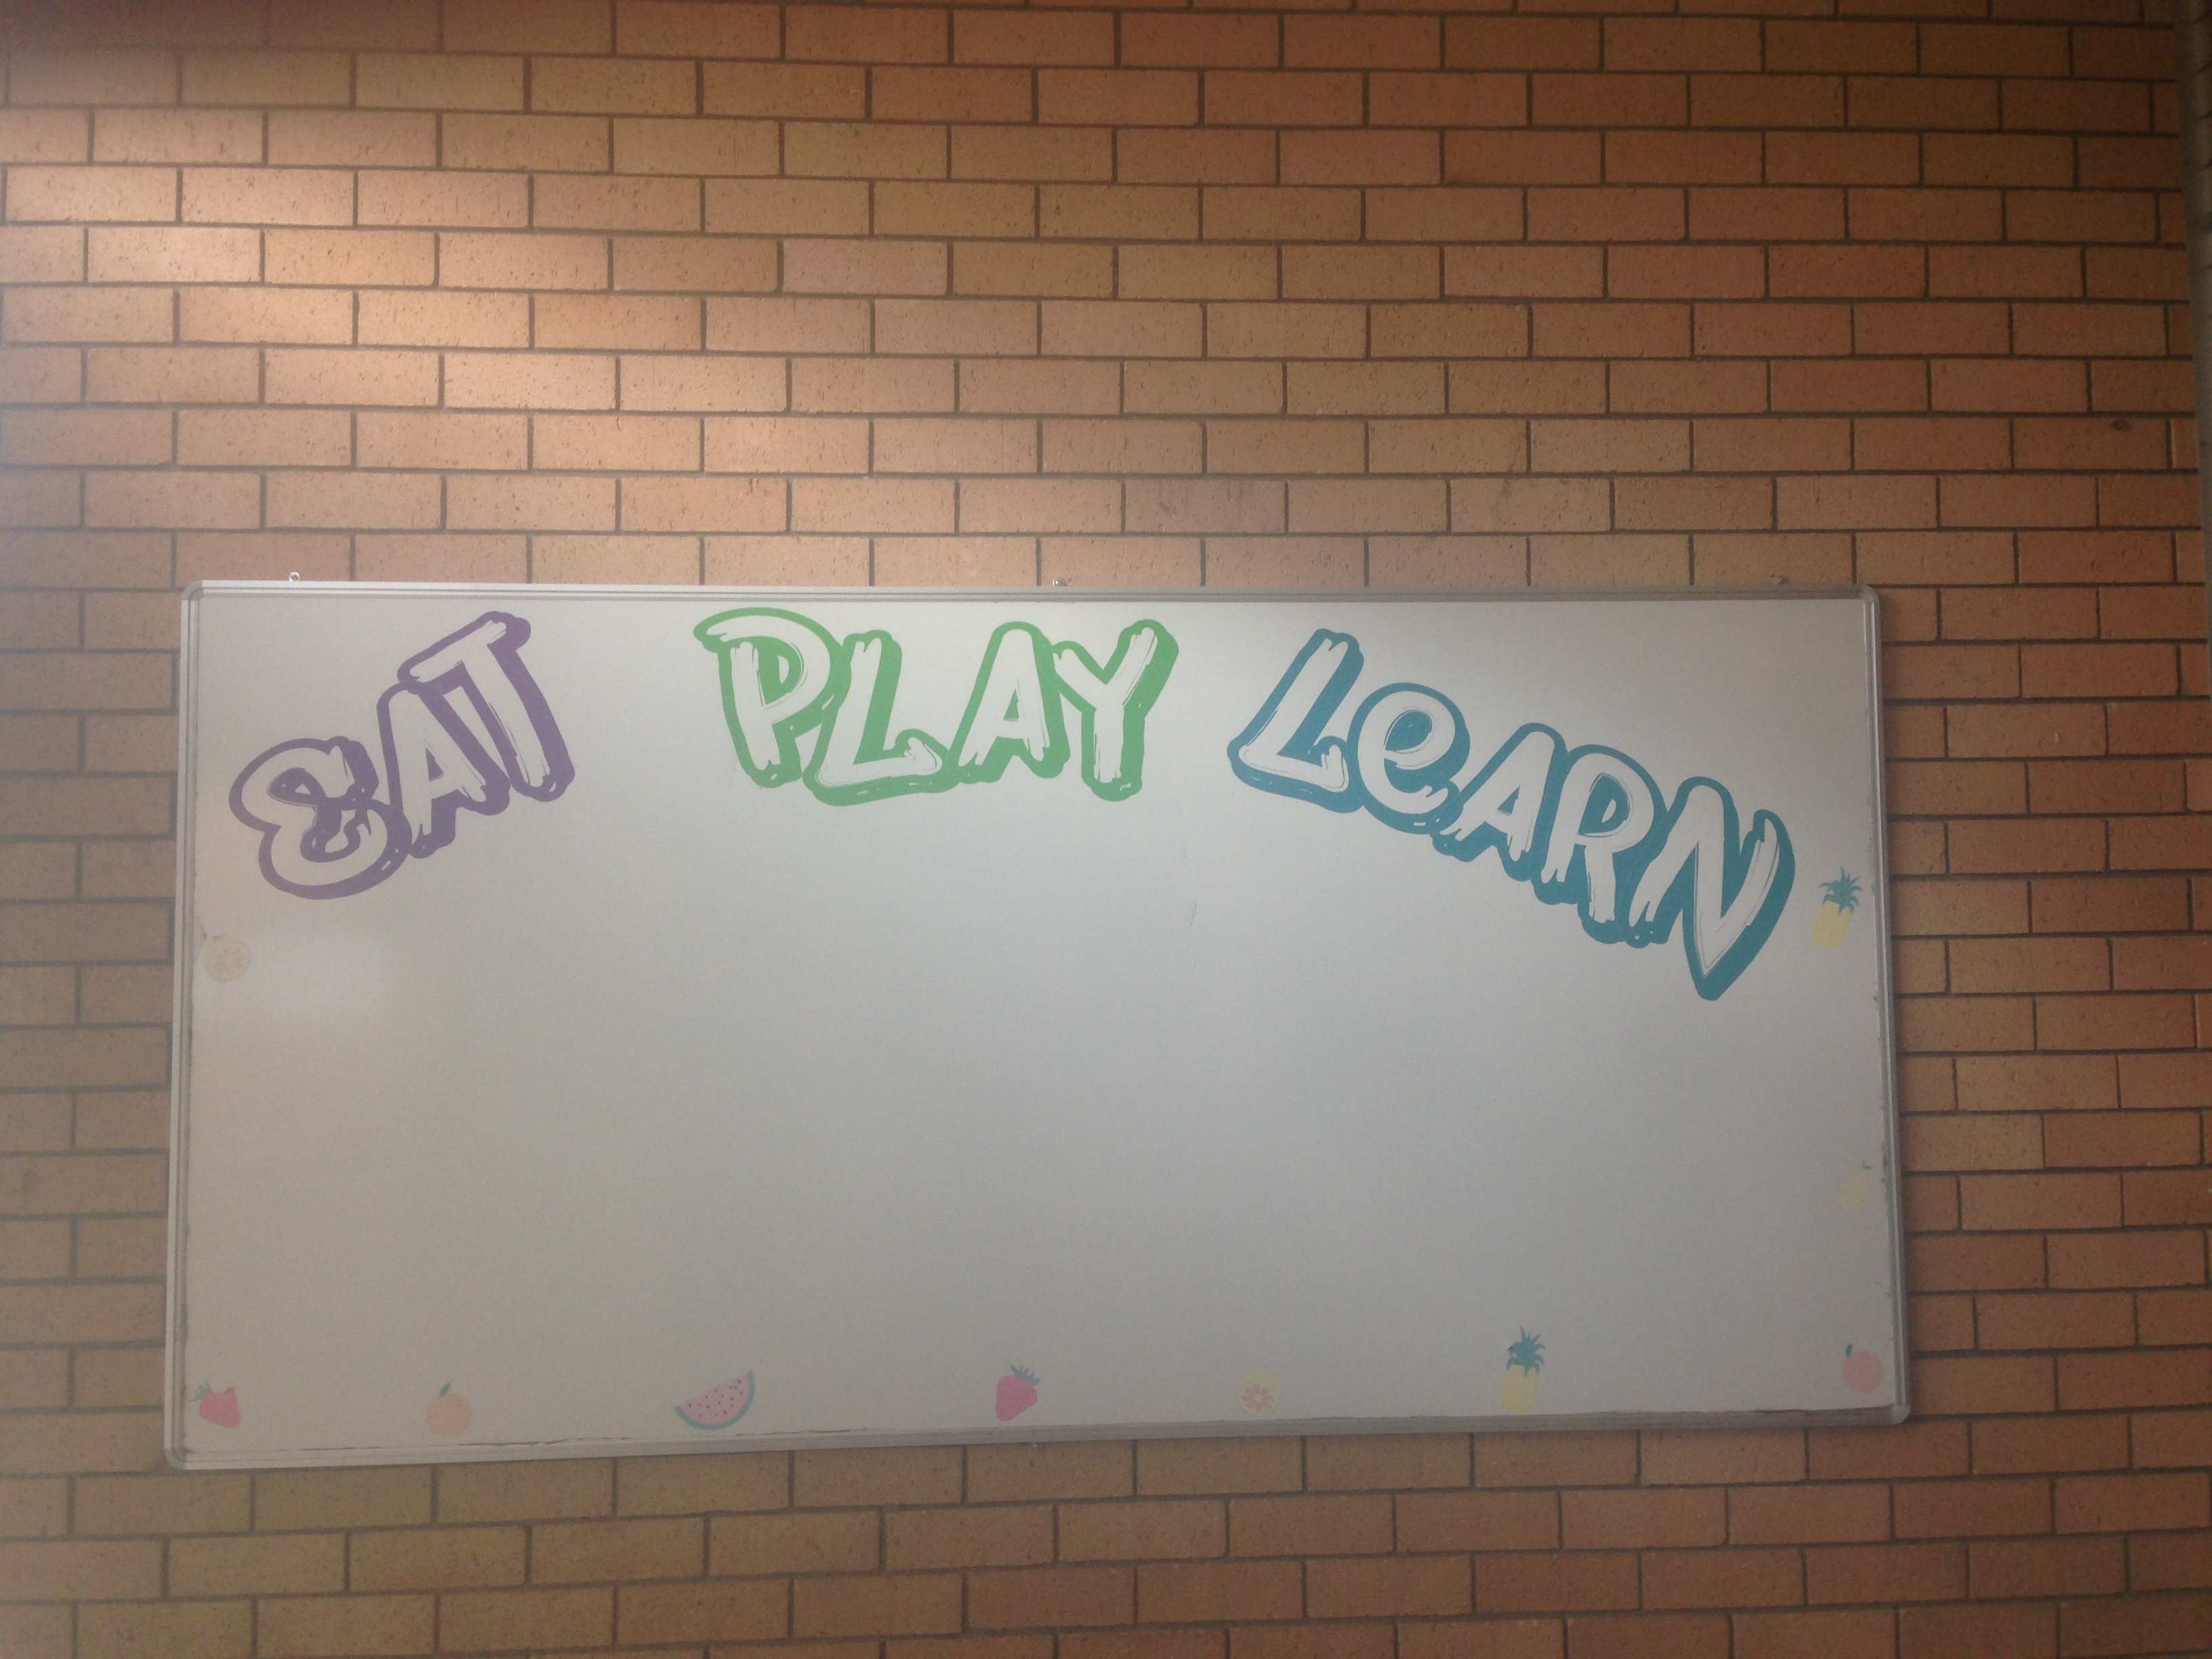 Eat, play, learn.